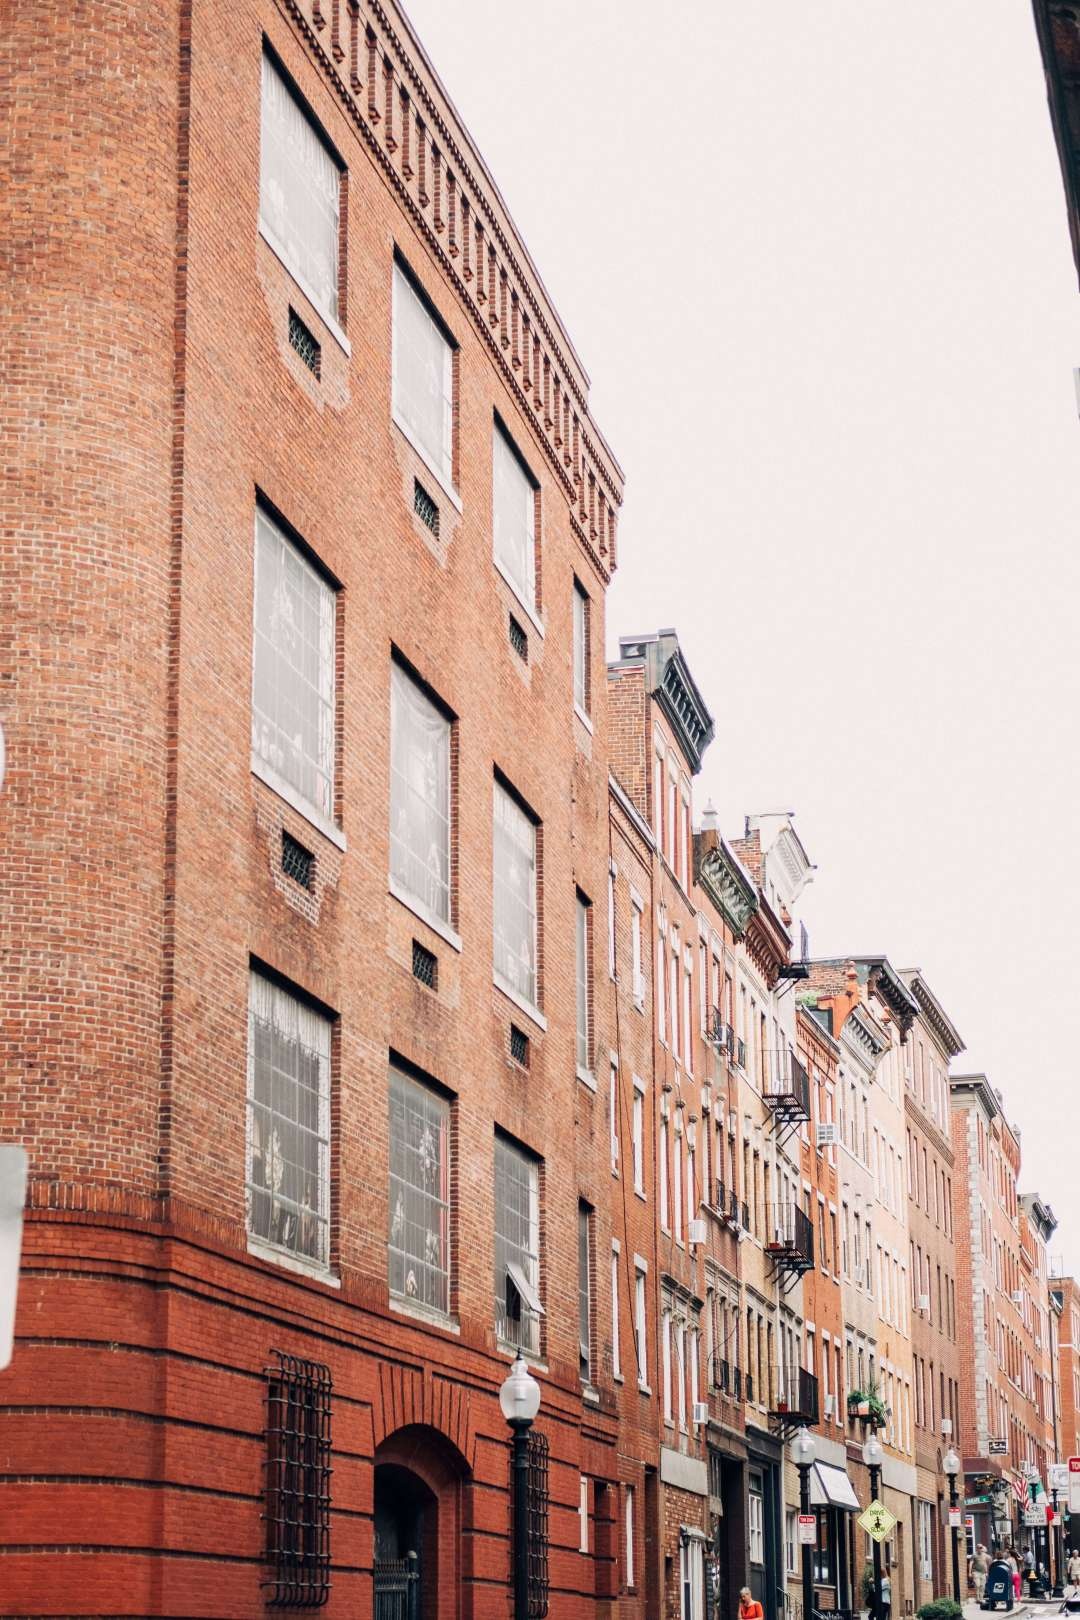 Boston Brick Buildings in a row